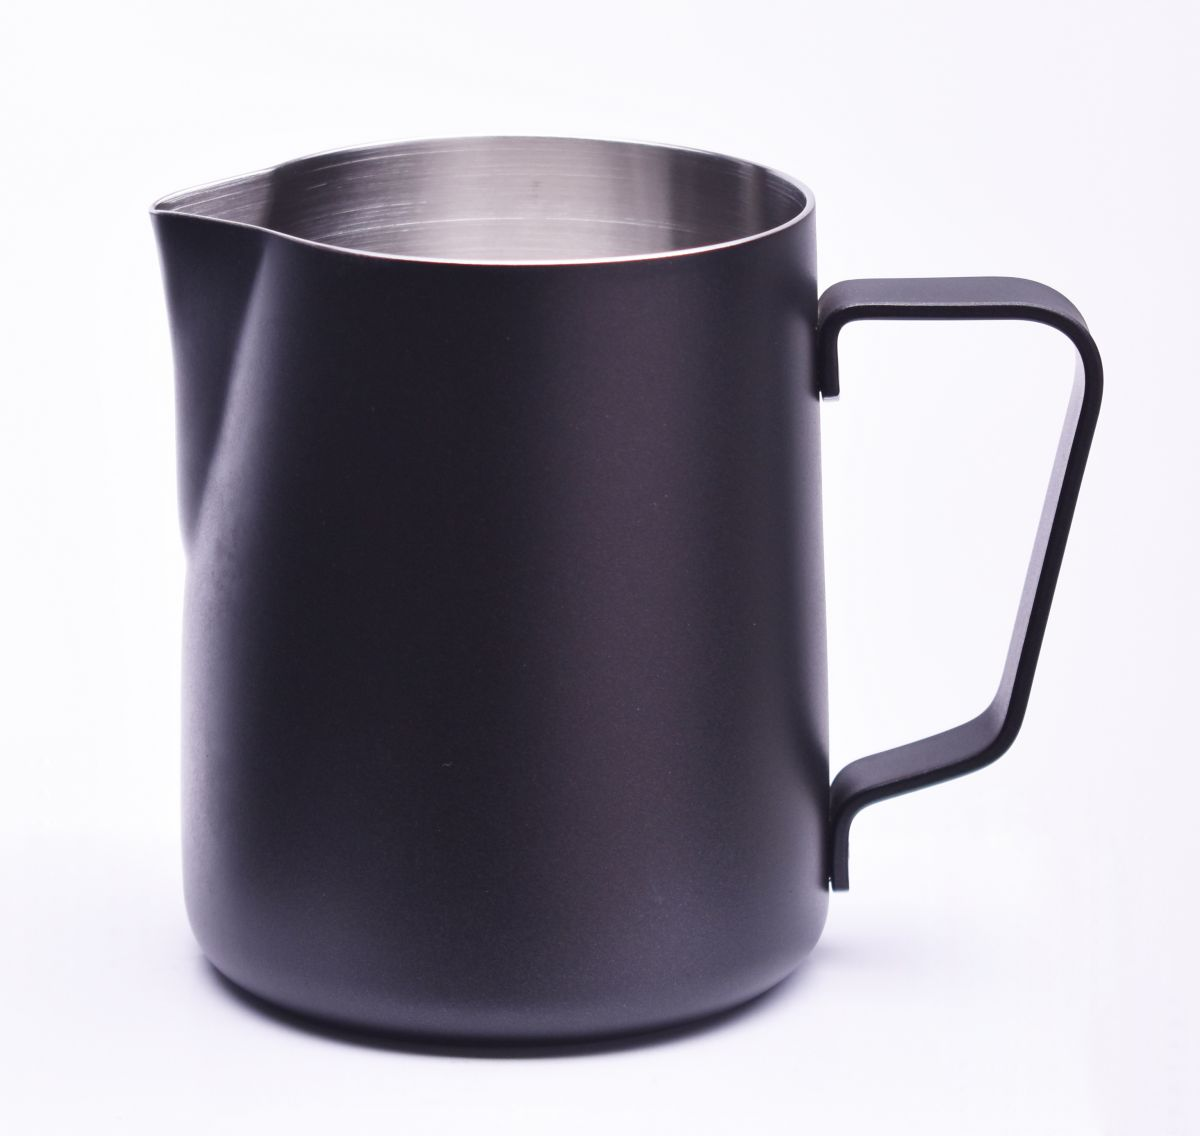 Joe Frex Milk Pitcher powder coated Black 350ml